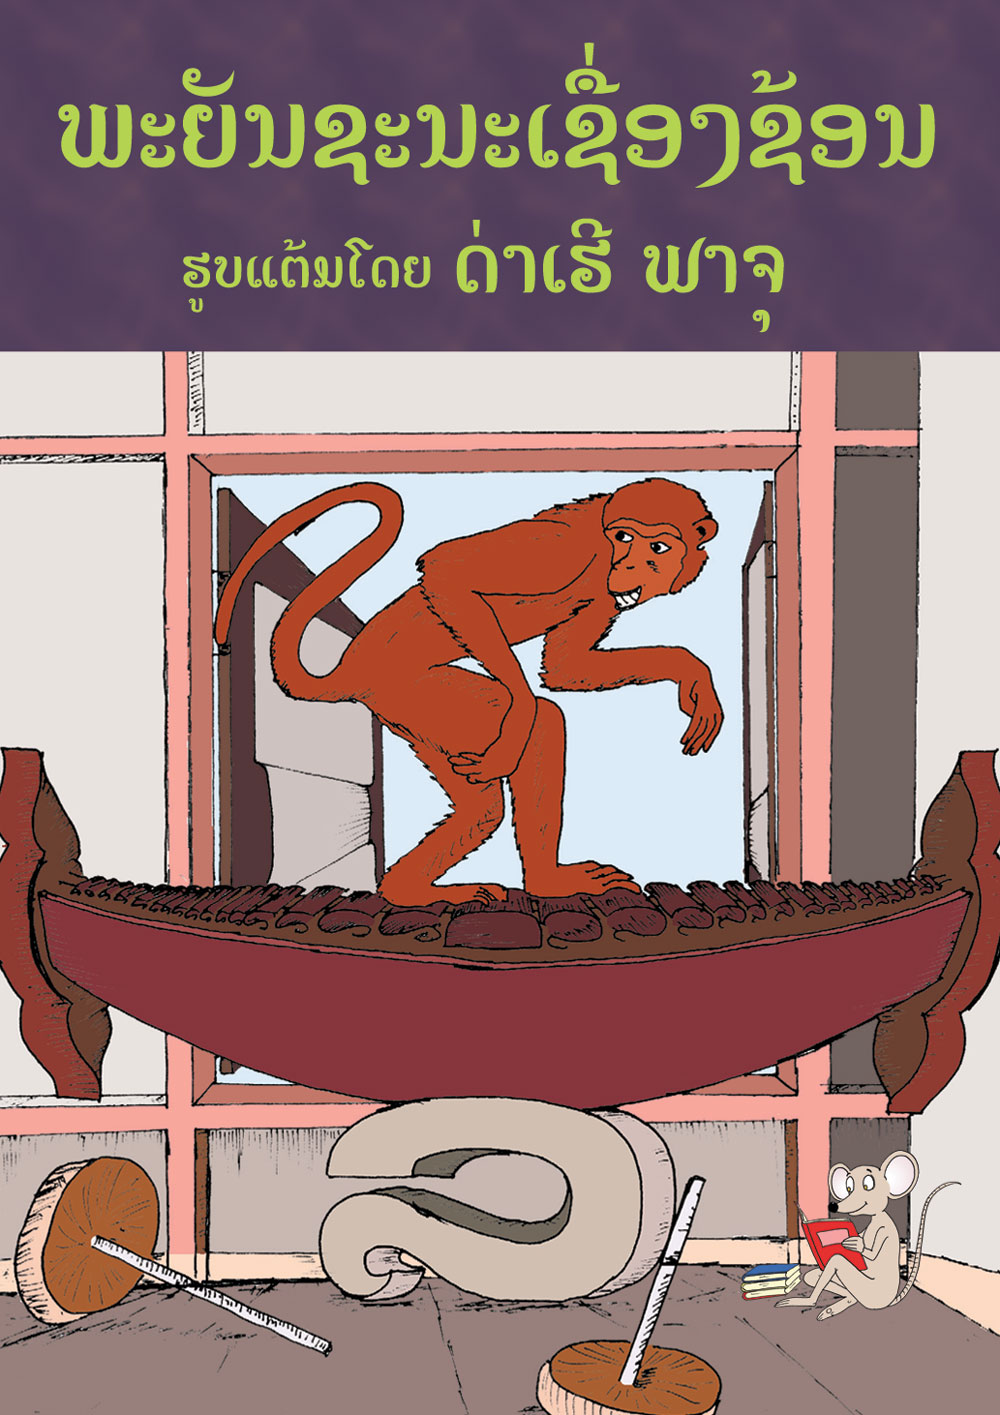 Hidden Alphabet large book cover, published in Lao language